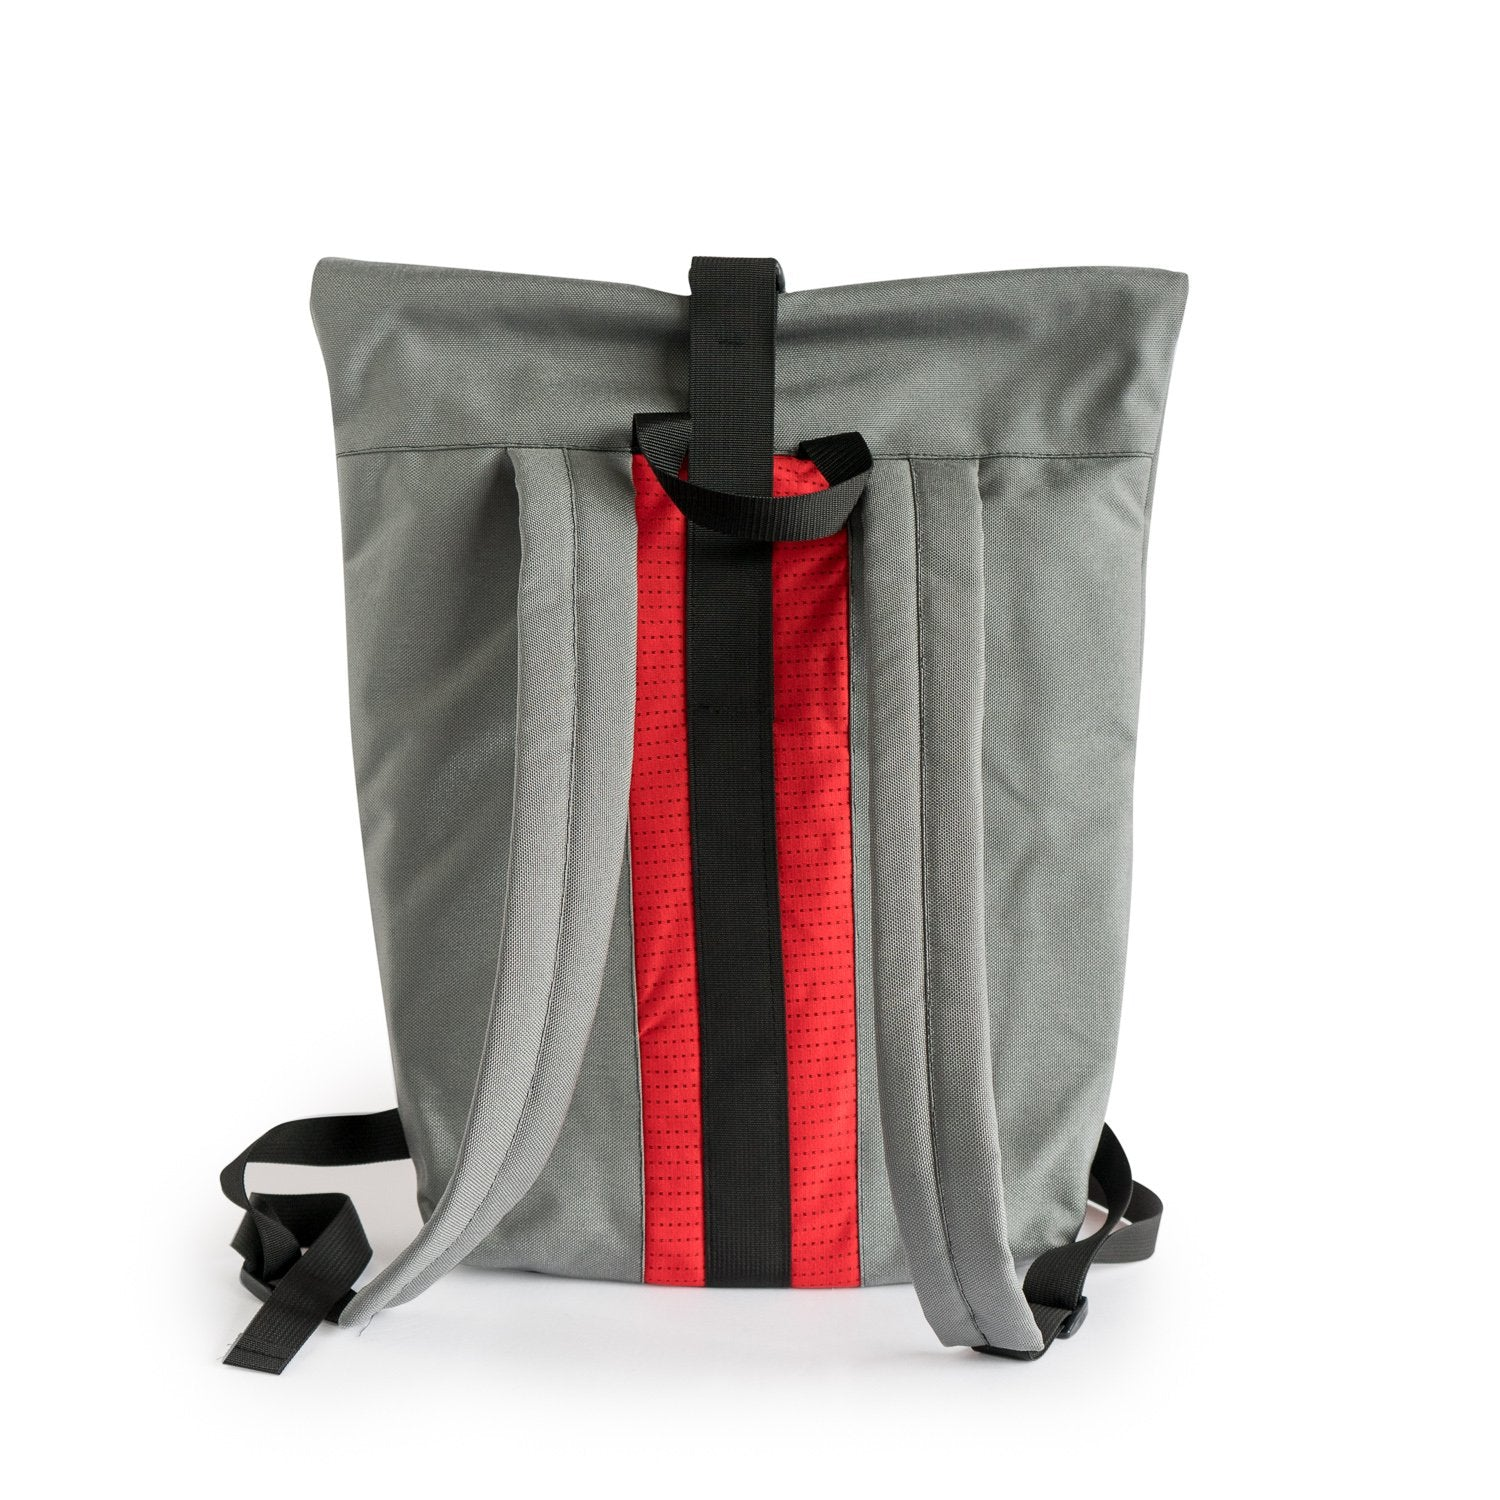 Back view of our Portland Blazers rolltop backpack made from upcycled NBA jerseys and canvas